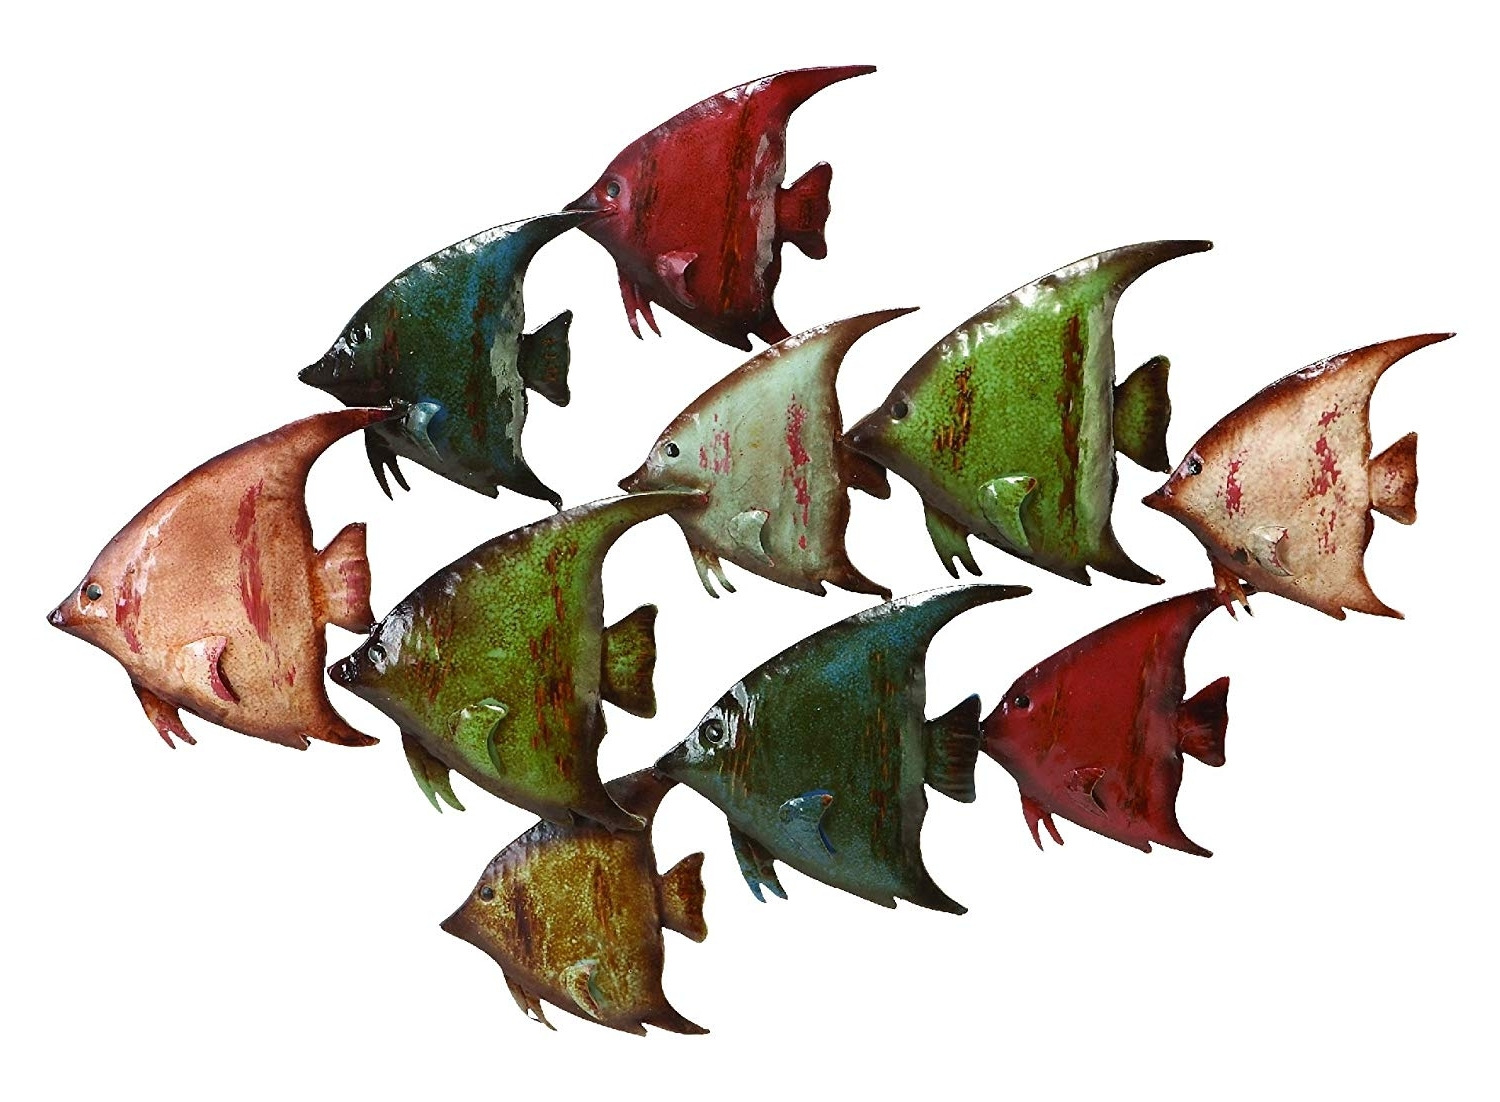 Outdoor Wall Art Decors Throughout Most Up To Date Amazon: Deco 79 63533 Metal Fish Wall Decor: Home & Kitchen (View 13 of 20)